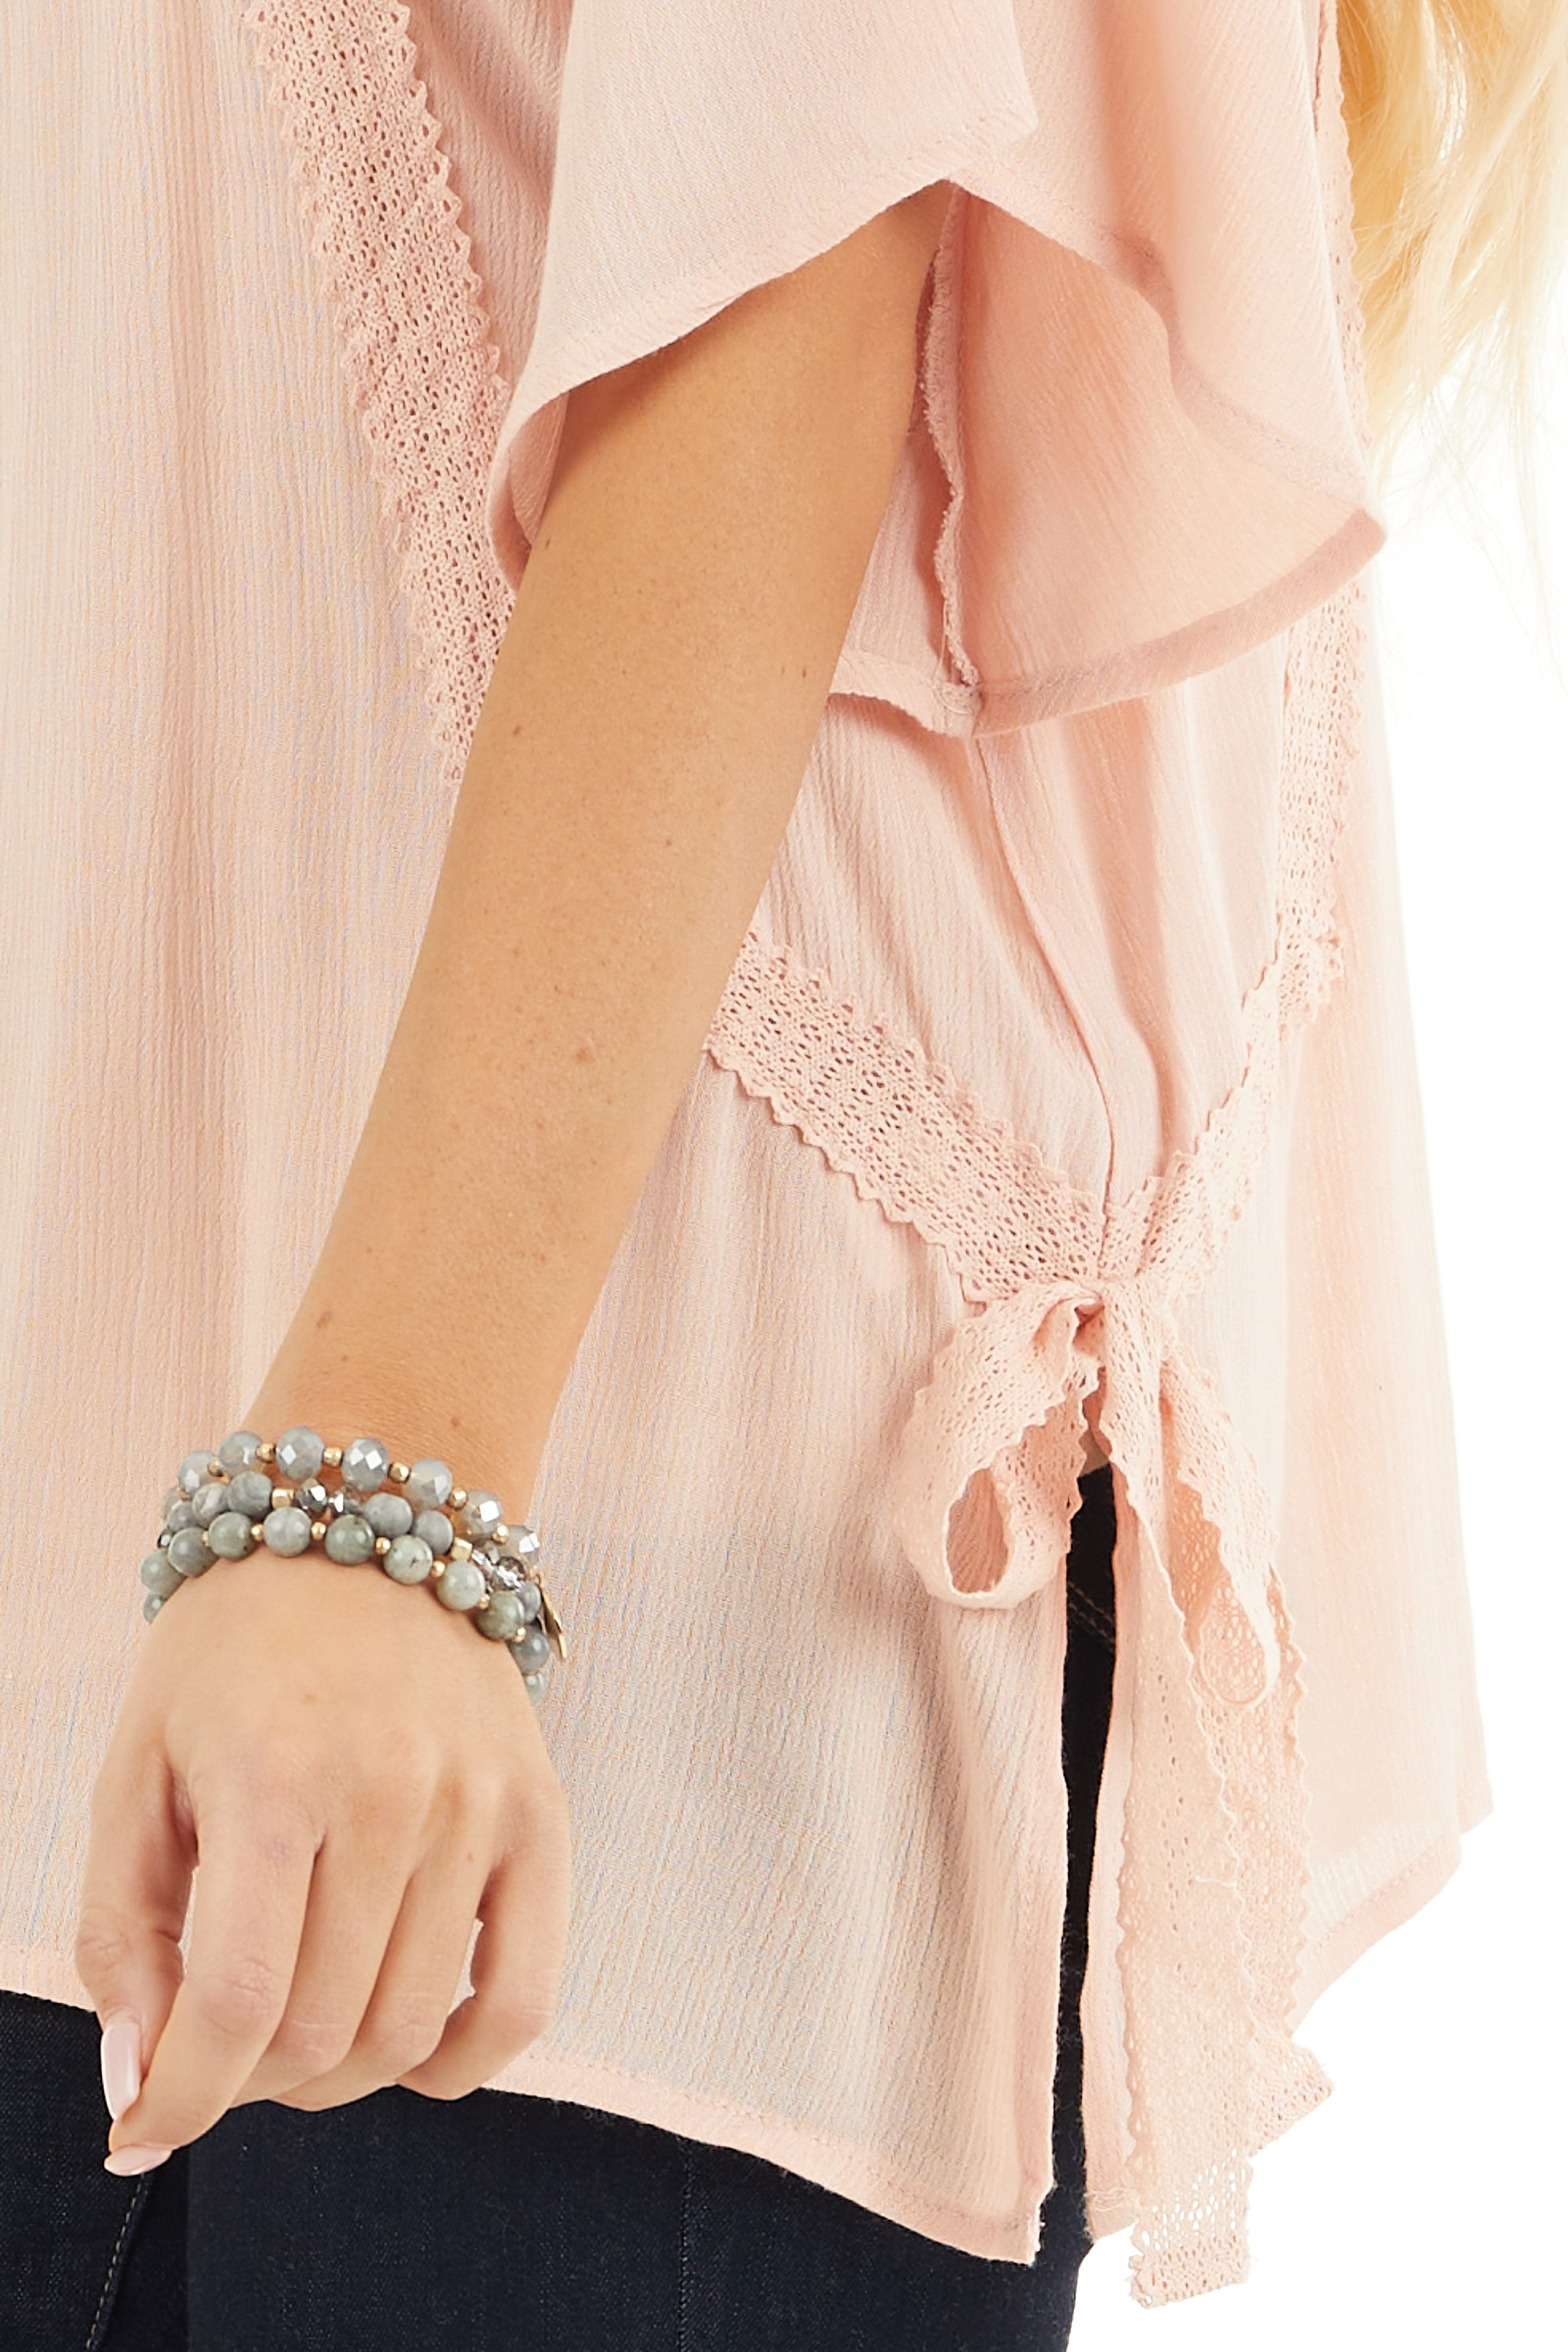 Blush Short Sleeve Top with Crochet Lace and Tie Detail detail